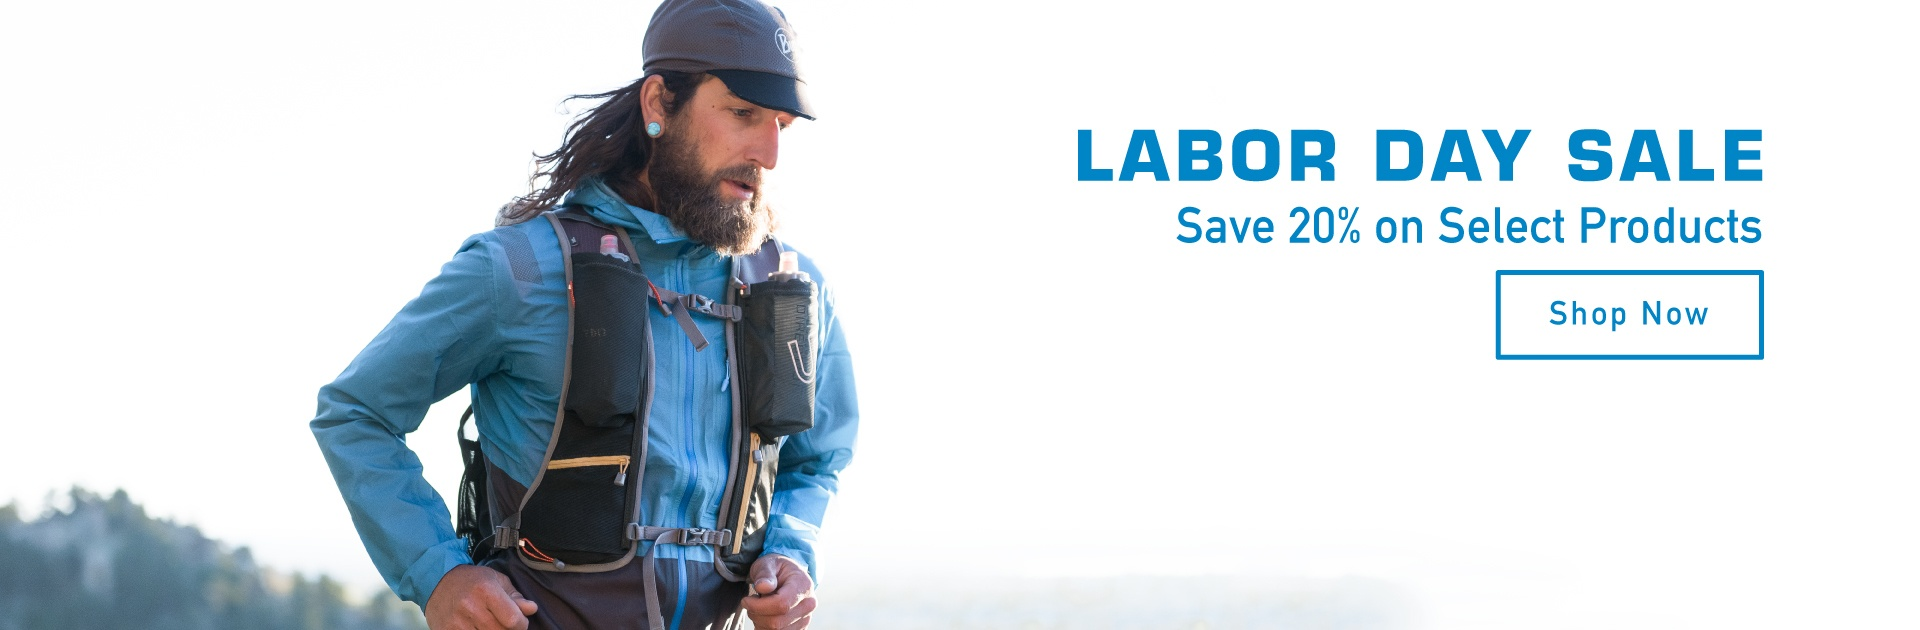 Labor Day Sale! Save 20% on Select Products